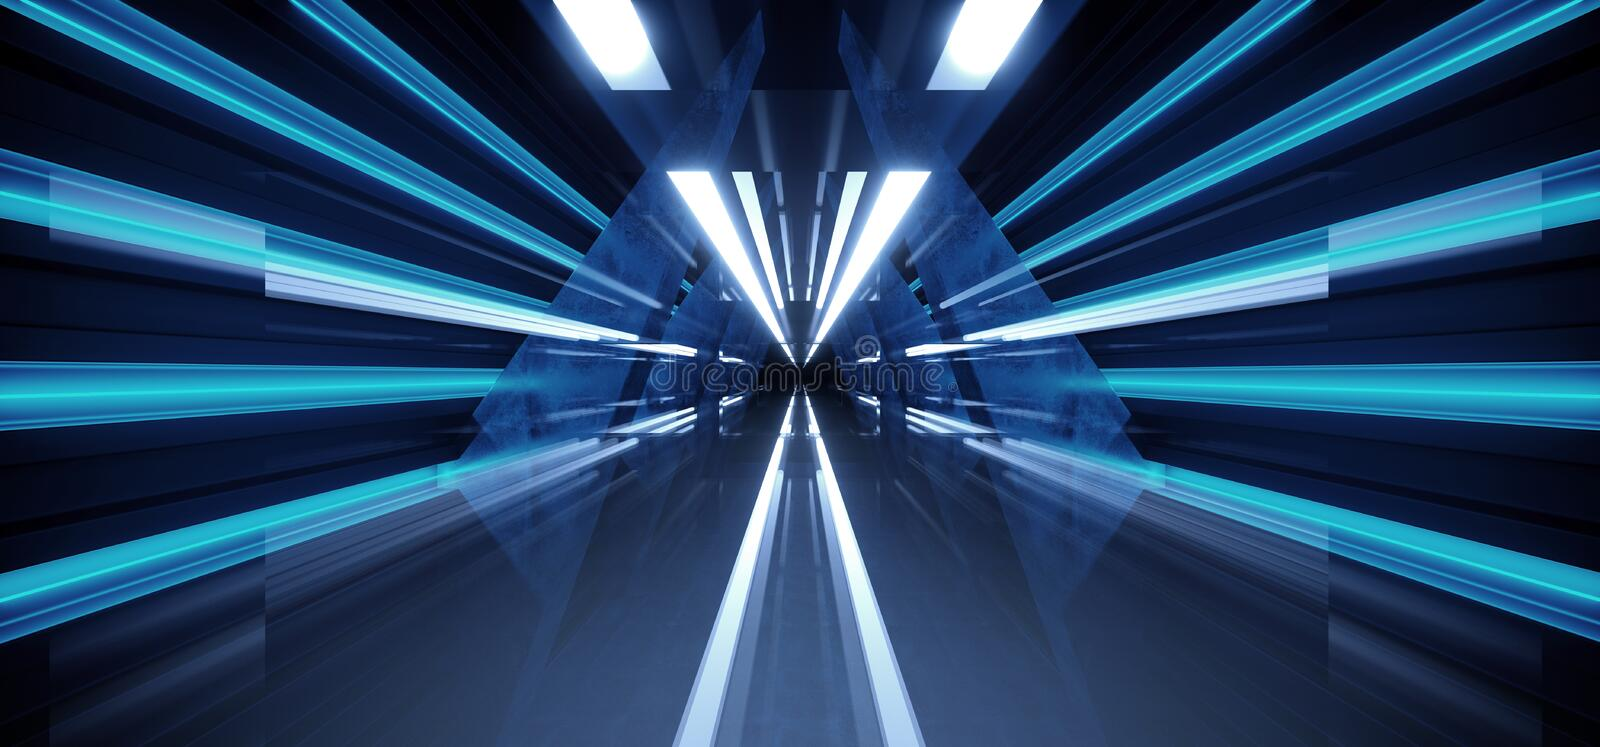 Neon Dark Stage Construction Glow Blue Retro Modern Sci Fi Futuristic Future Tunnel Corridor Hallway Grunge Concrete Reflection. Shapes Fluorescent Lasers 3D royalty free illustration